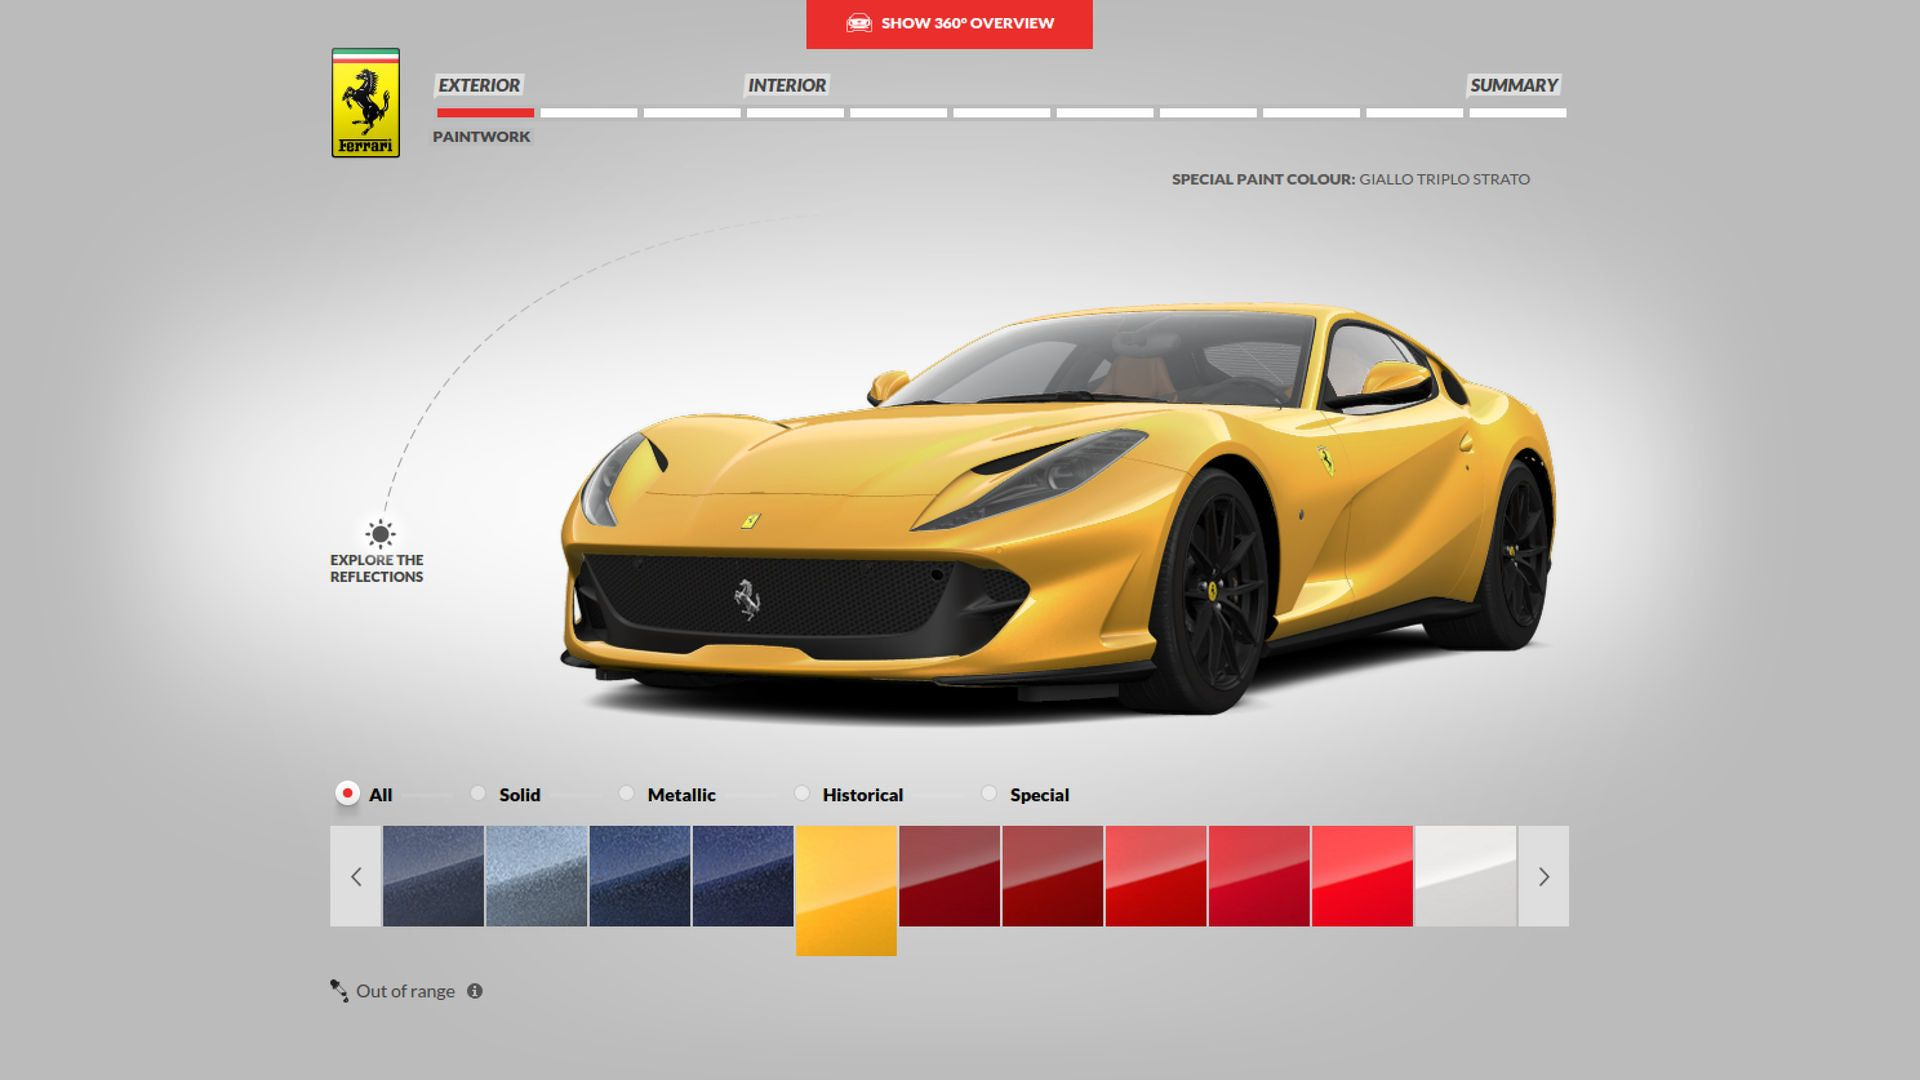 2018 Ferrari 812 Superfast Redesign And Engine. About Specifications Car  Engine , Price, Overview Interior Exterior And HD Image Wallpaper